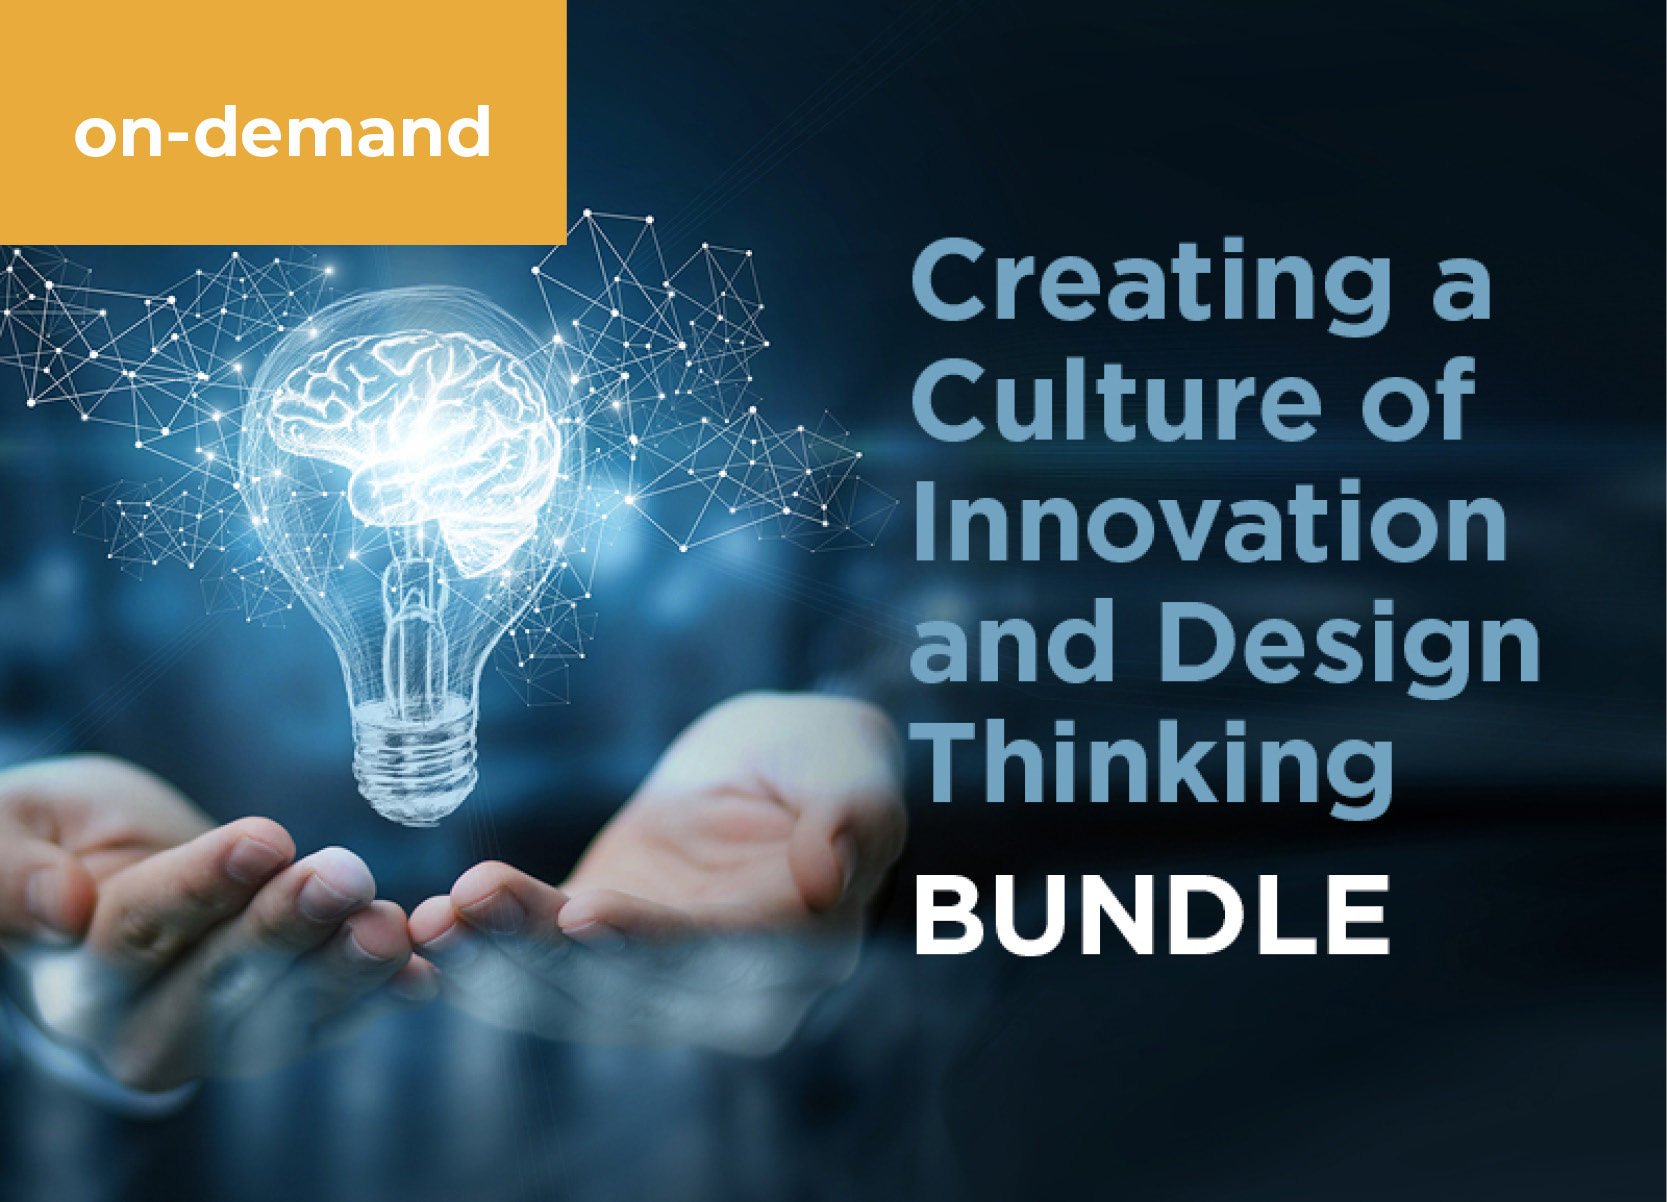 Creating a Culture of Innovation and Design Thinking Bundle